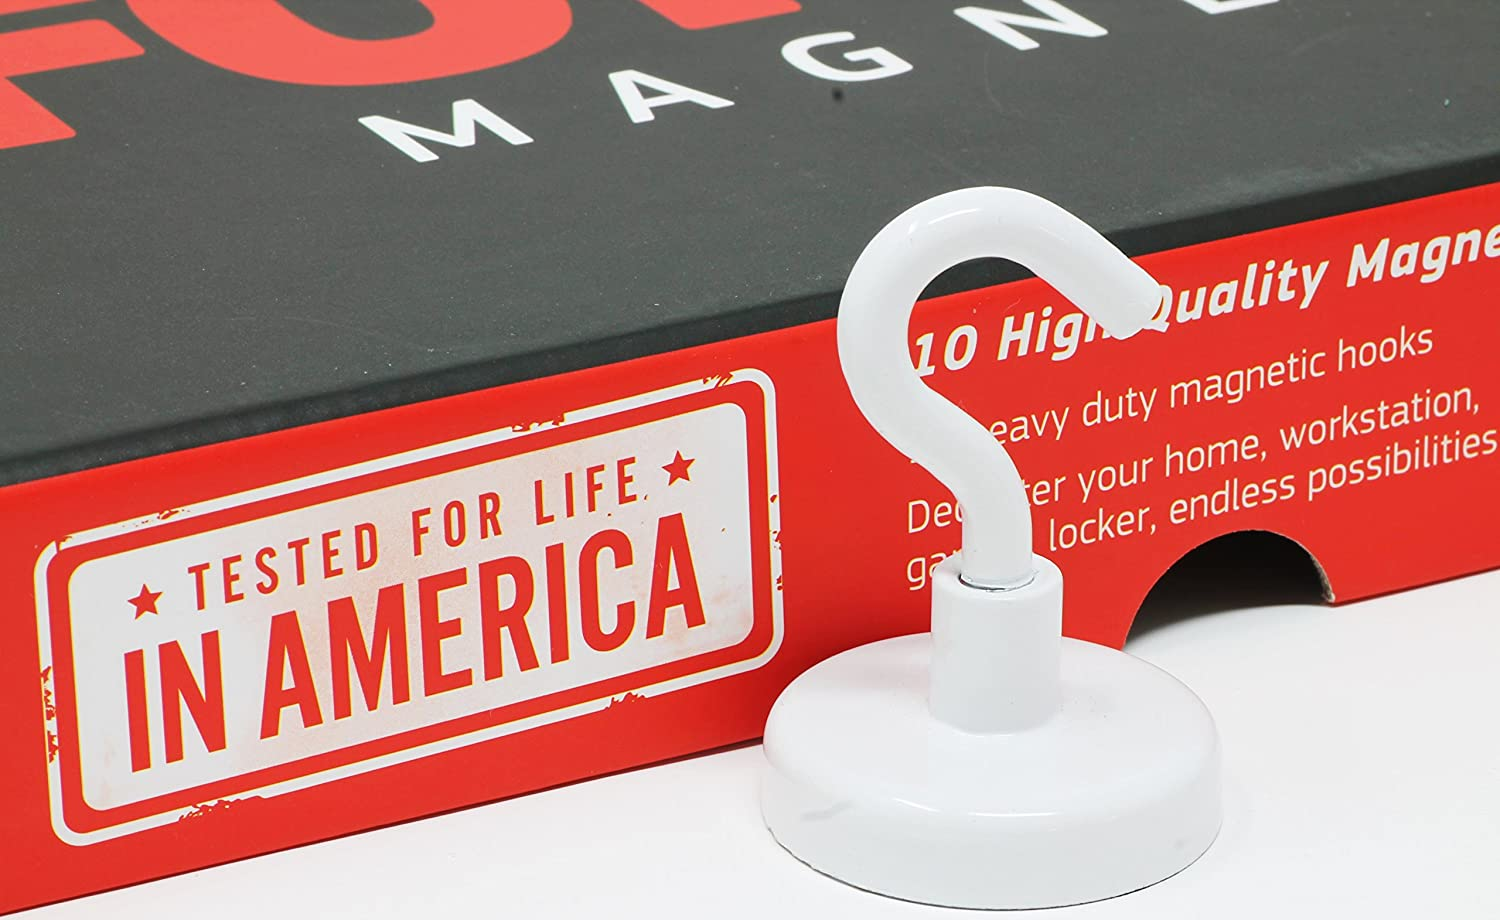 FORCE MAGNET Powerful Magnetic Hooks - 10 Magnetic Hooks, Heavy Duty Steep with a Powerful Magnet, Comes with BONUS No-Scratch Pads to Protect Your Surfaces. Ideal Hook for Home, Kitchen, Workplace, Office, Shop, and Garage (CHROME)